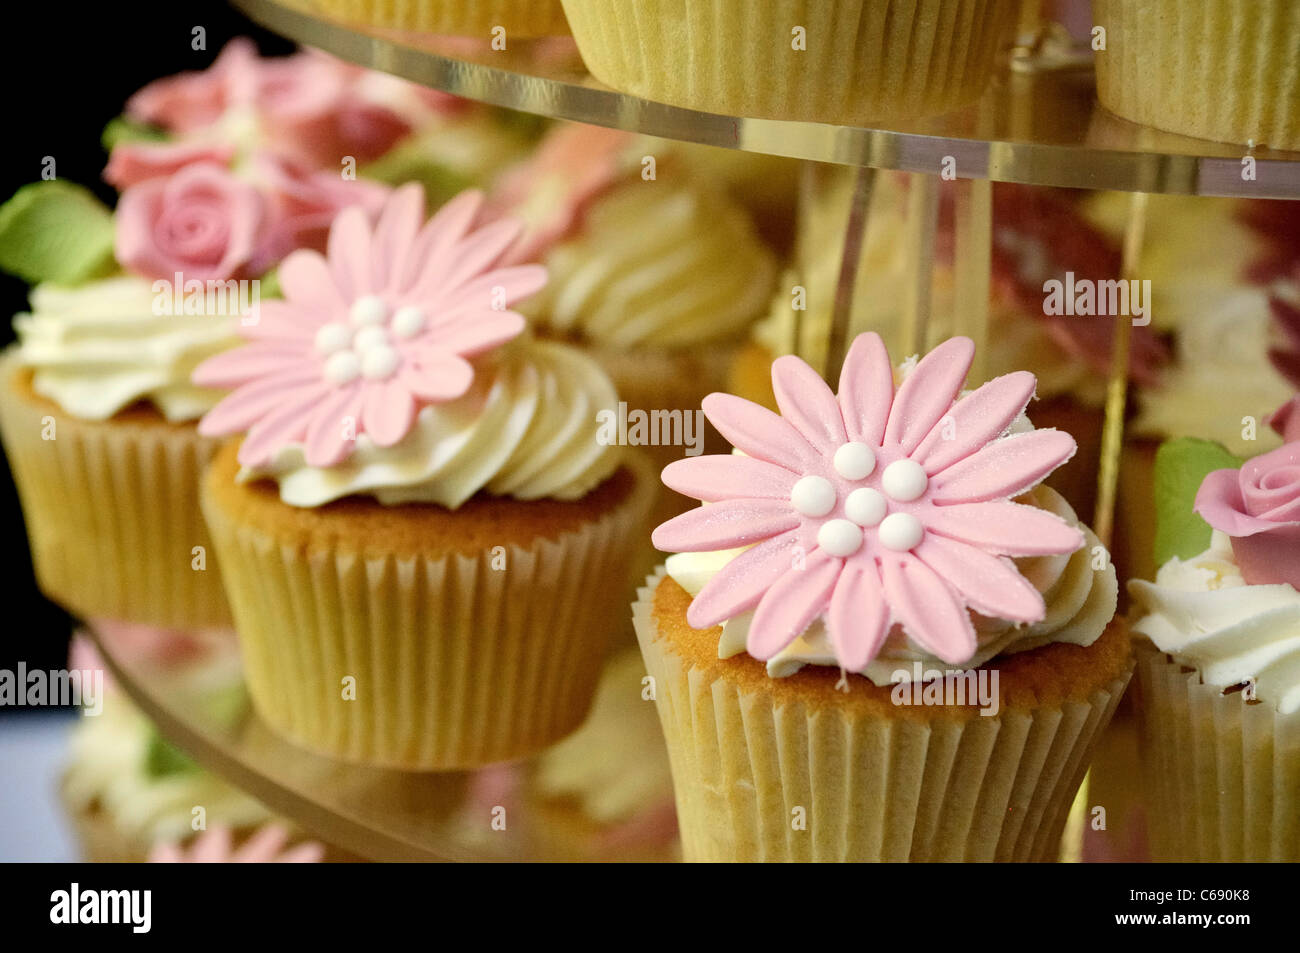 Wedding cake made from a stack of cup cakes cupcakes Stock Photo ...